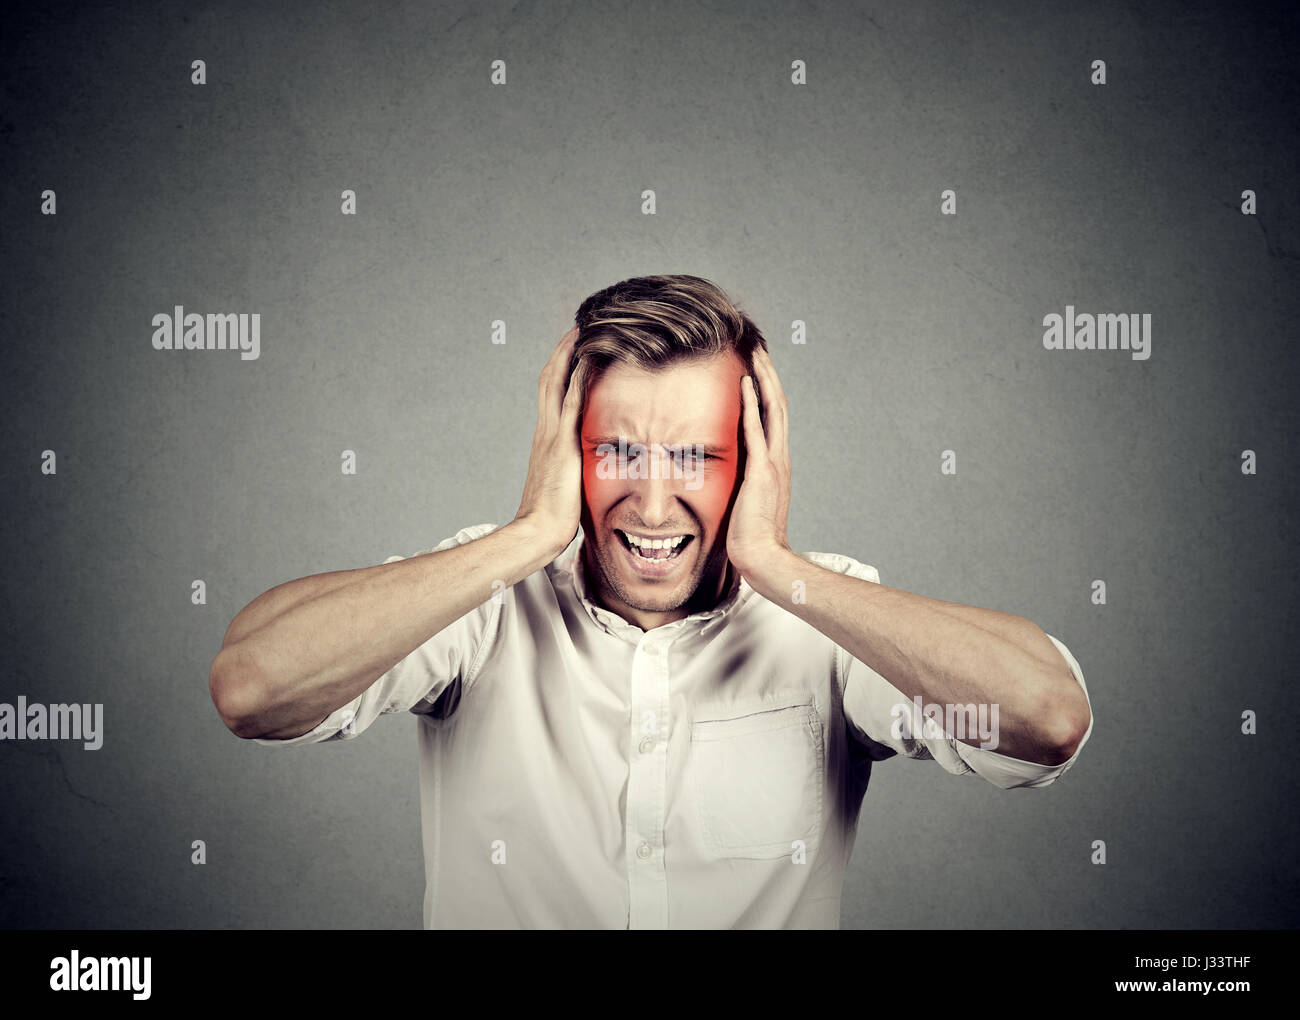 man with headache isolated on gray wall background - Stock Image